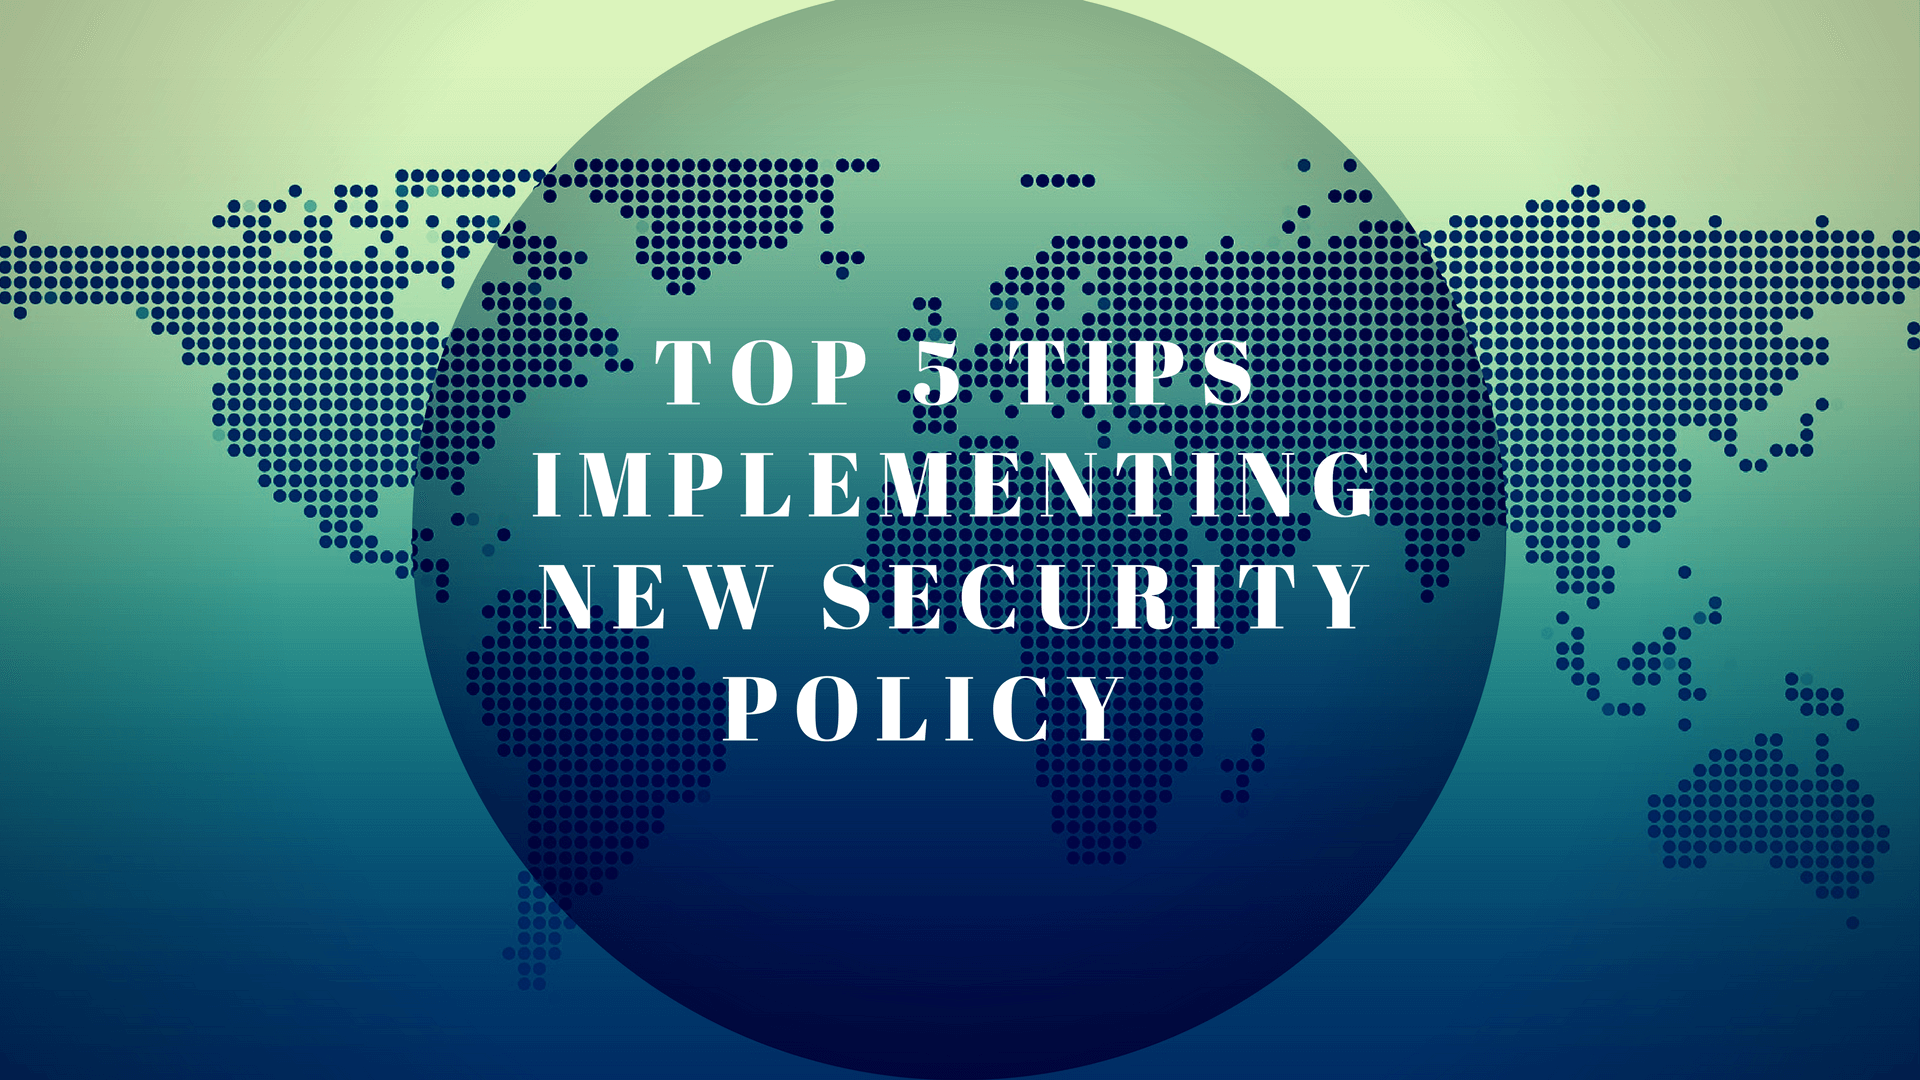 Security Policy | Top 5 Tips for Implementing a New Security Policy